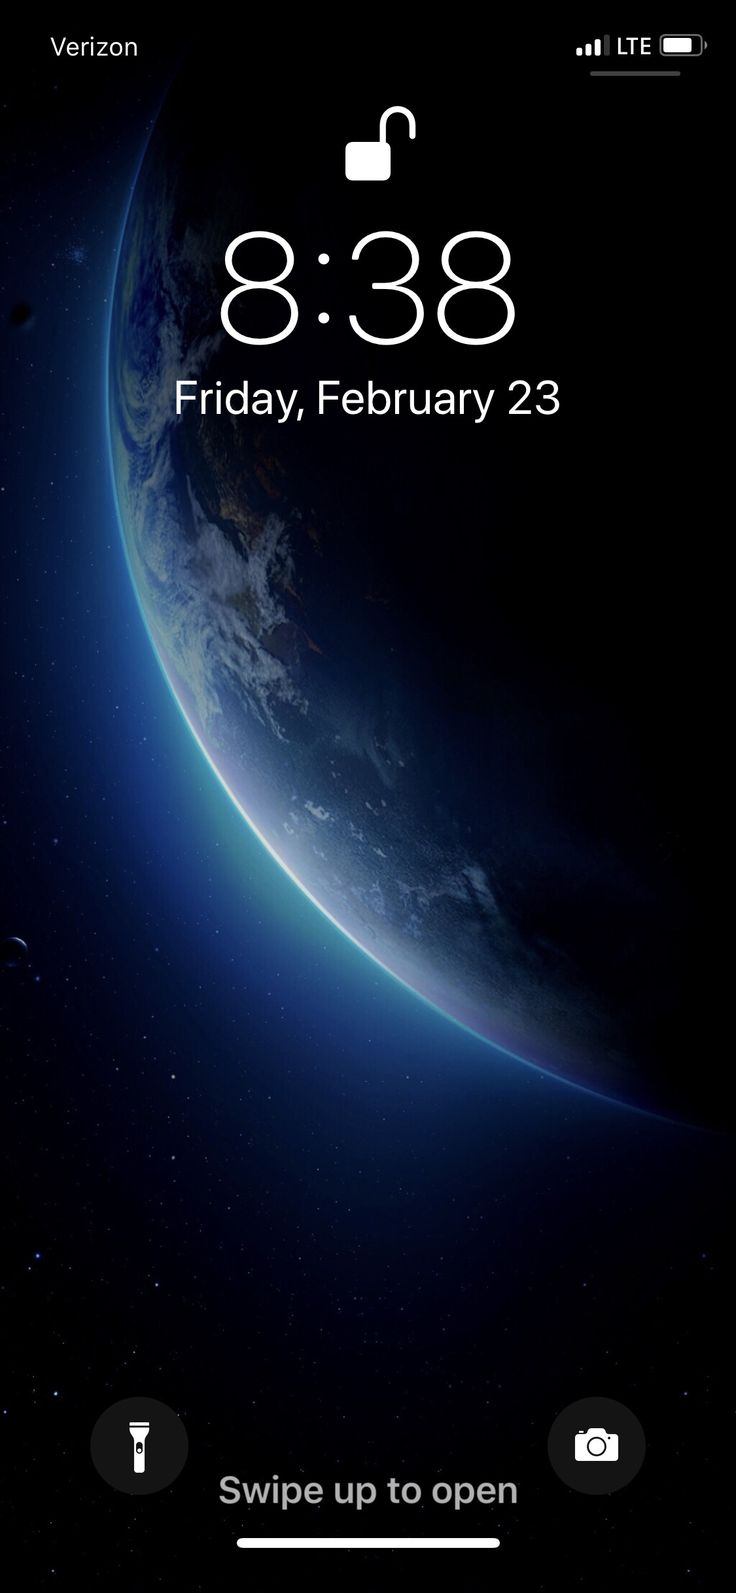 If were going to have live wallpapers why cant we get cool stuff like maybe this planet rotating?http://ift.tt/2HG1DxQ